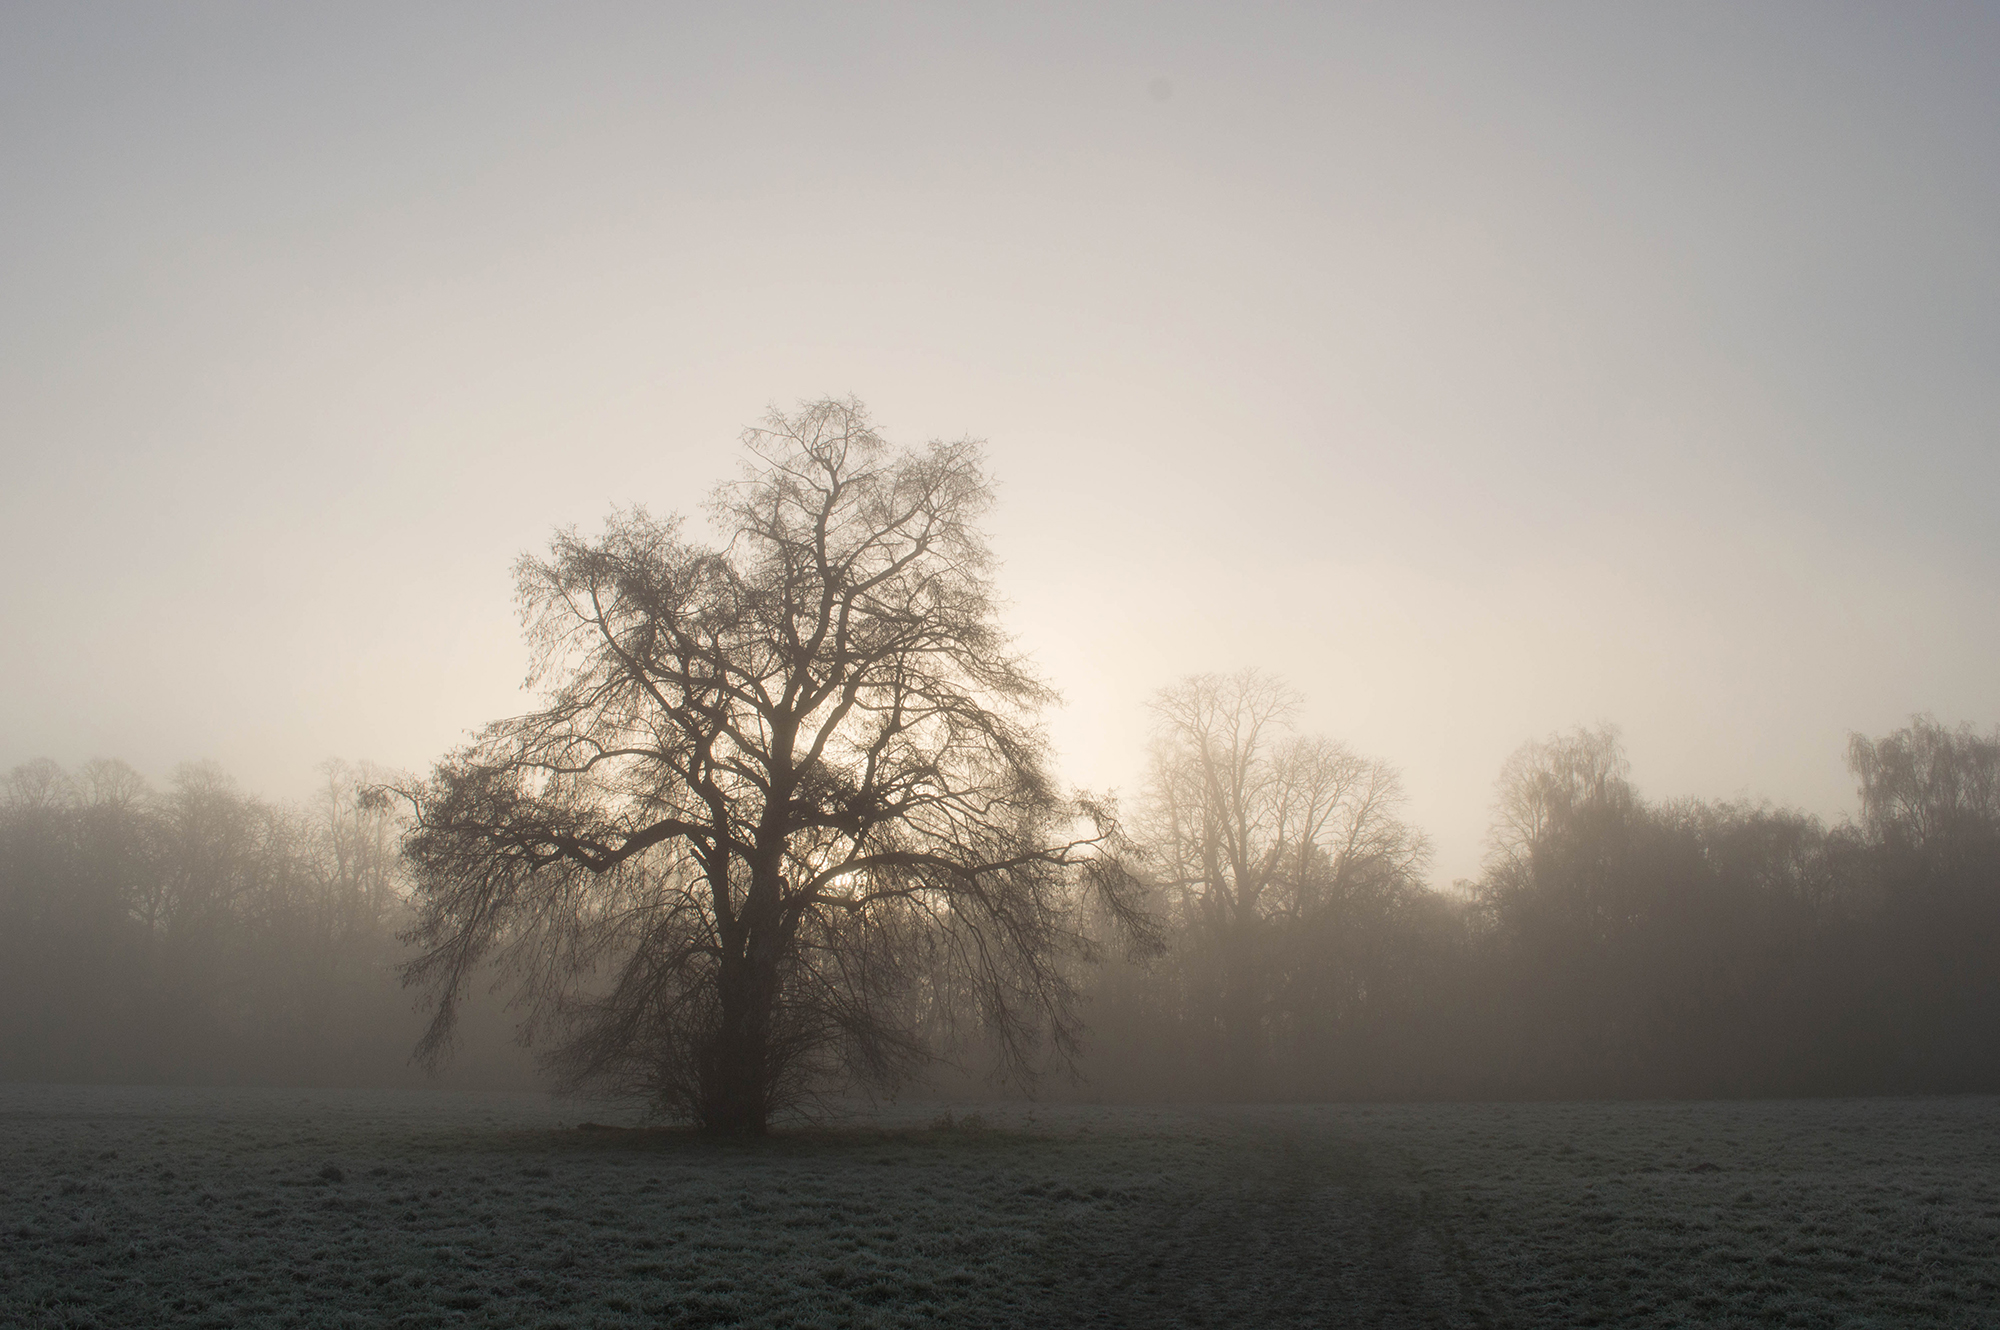 Misty Nonsuch Park